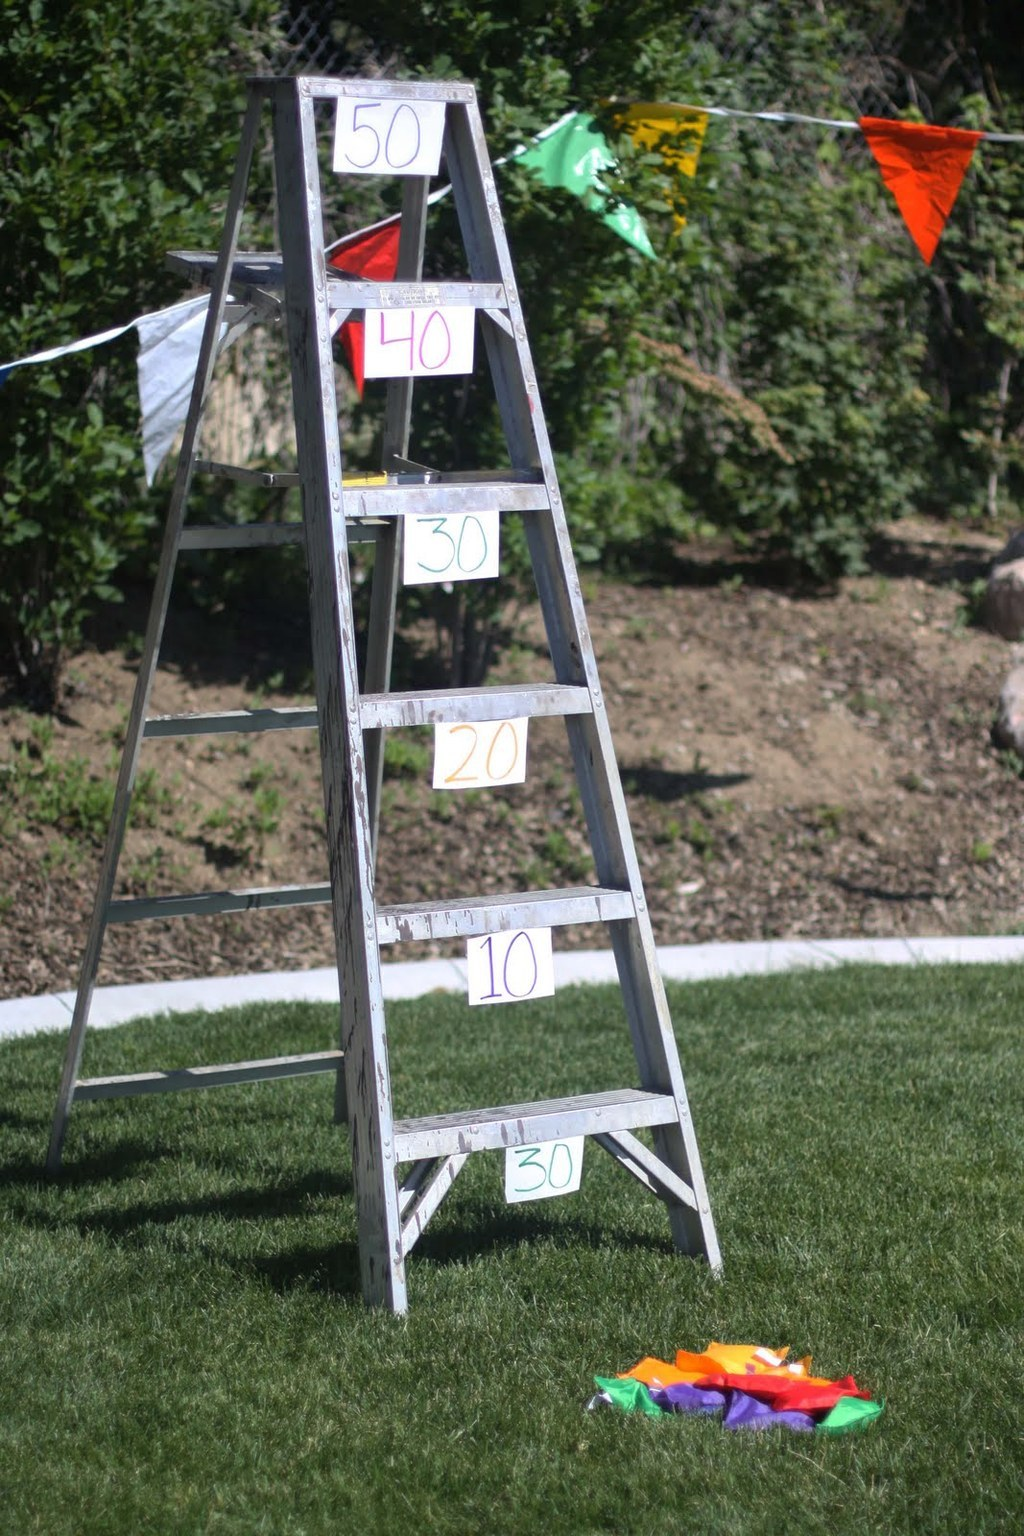 7. Bean Bag Ladder Toss